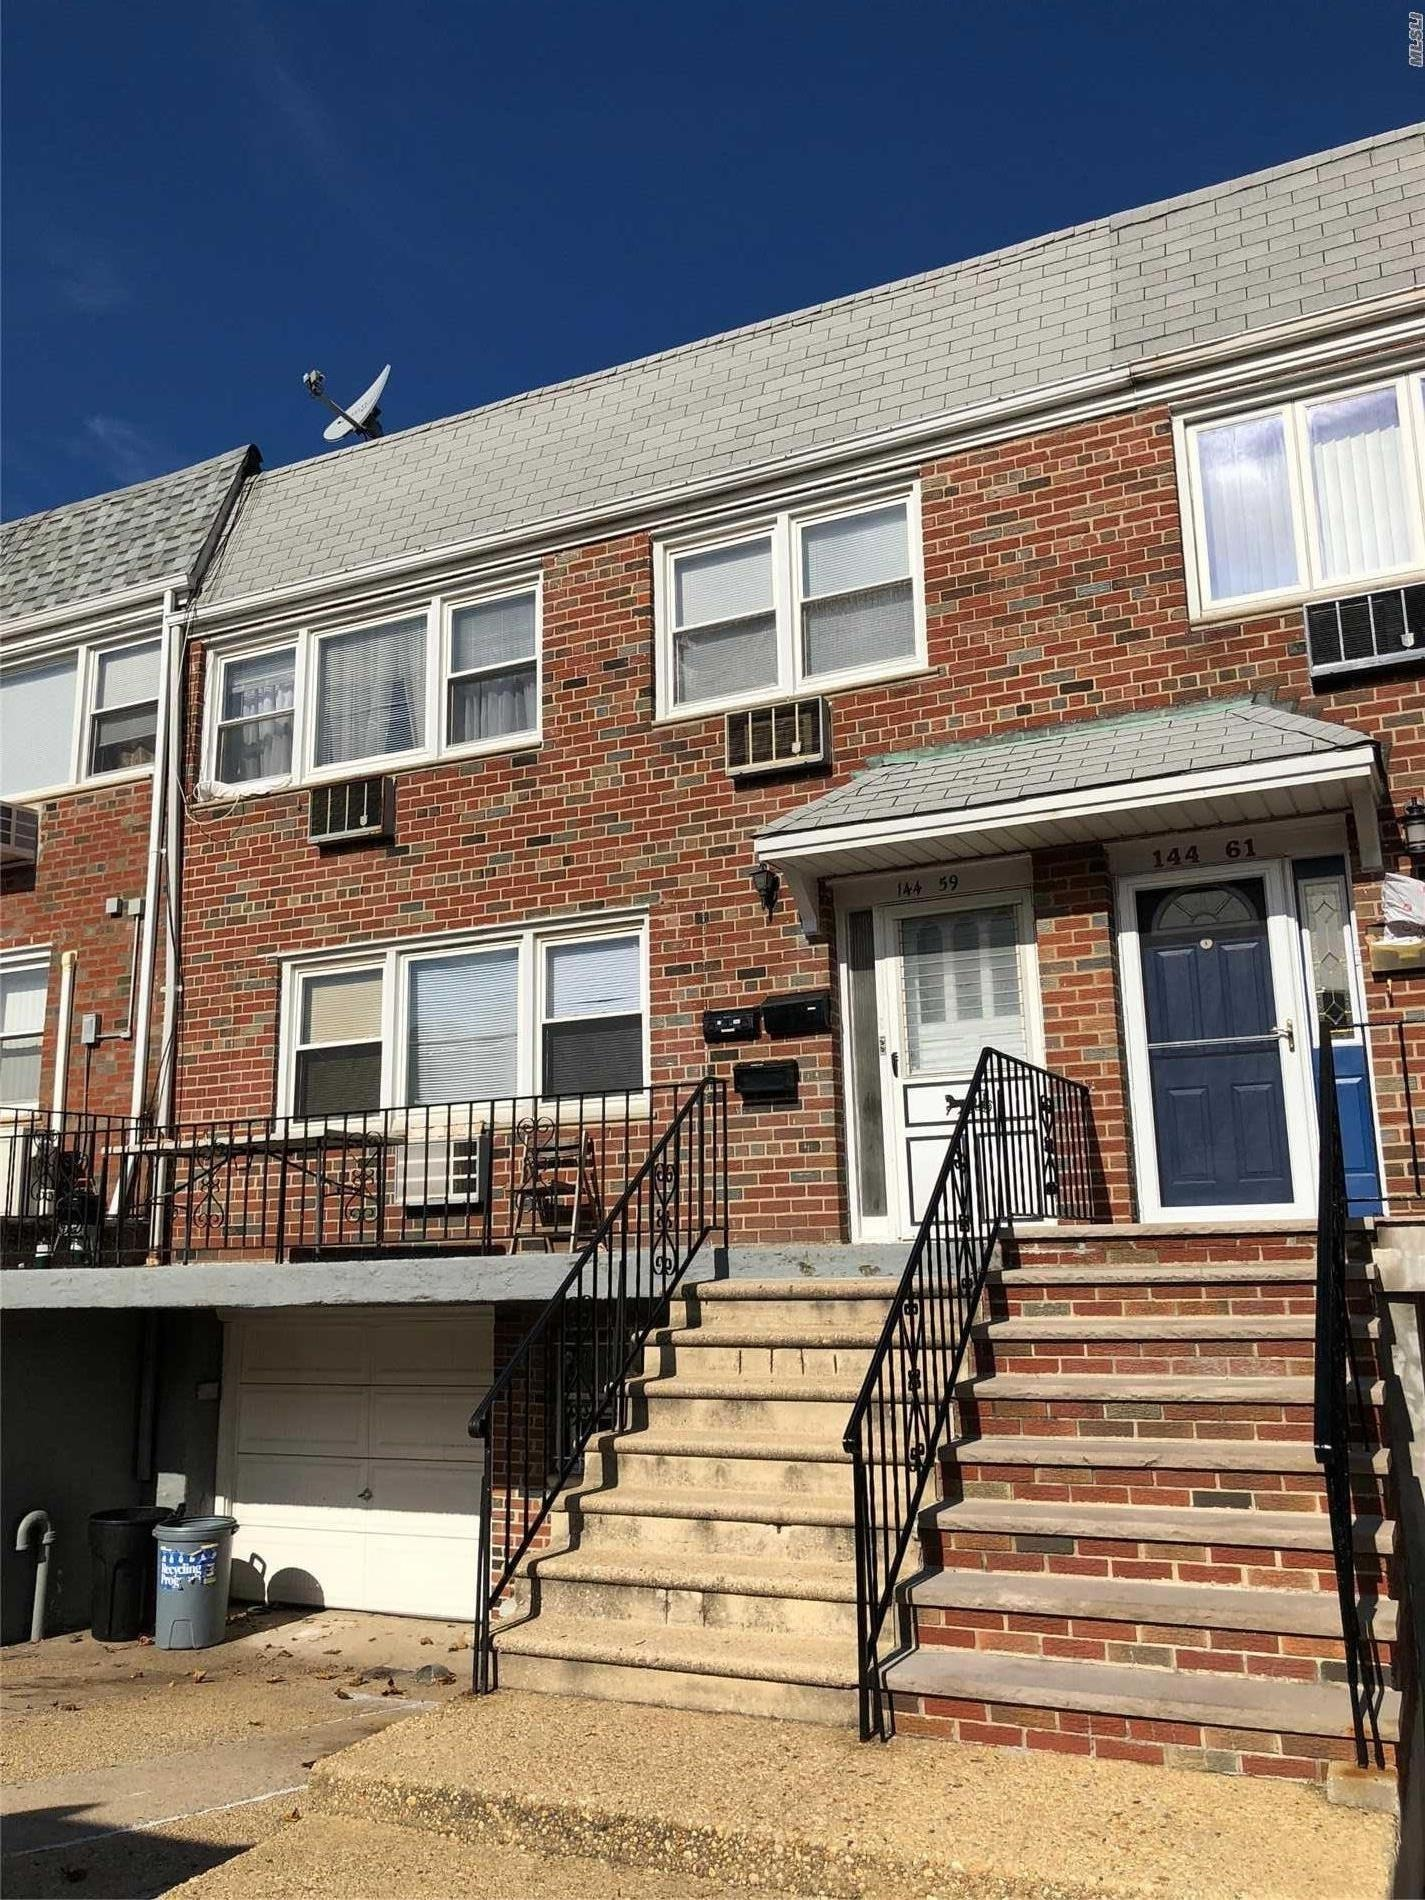 Come See This 3 Family House For Sale. Featuring 3 Bedrooms Over 2 Bedrooms Over 1 Bedroom. All Apartments Have Eat-In-Kitchens. Home Has A 1 Car Garage, And A 2 Car Private Driveway. Close To School And Park. A Must See!